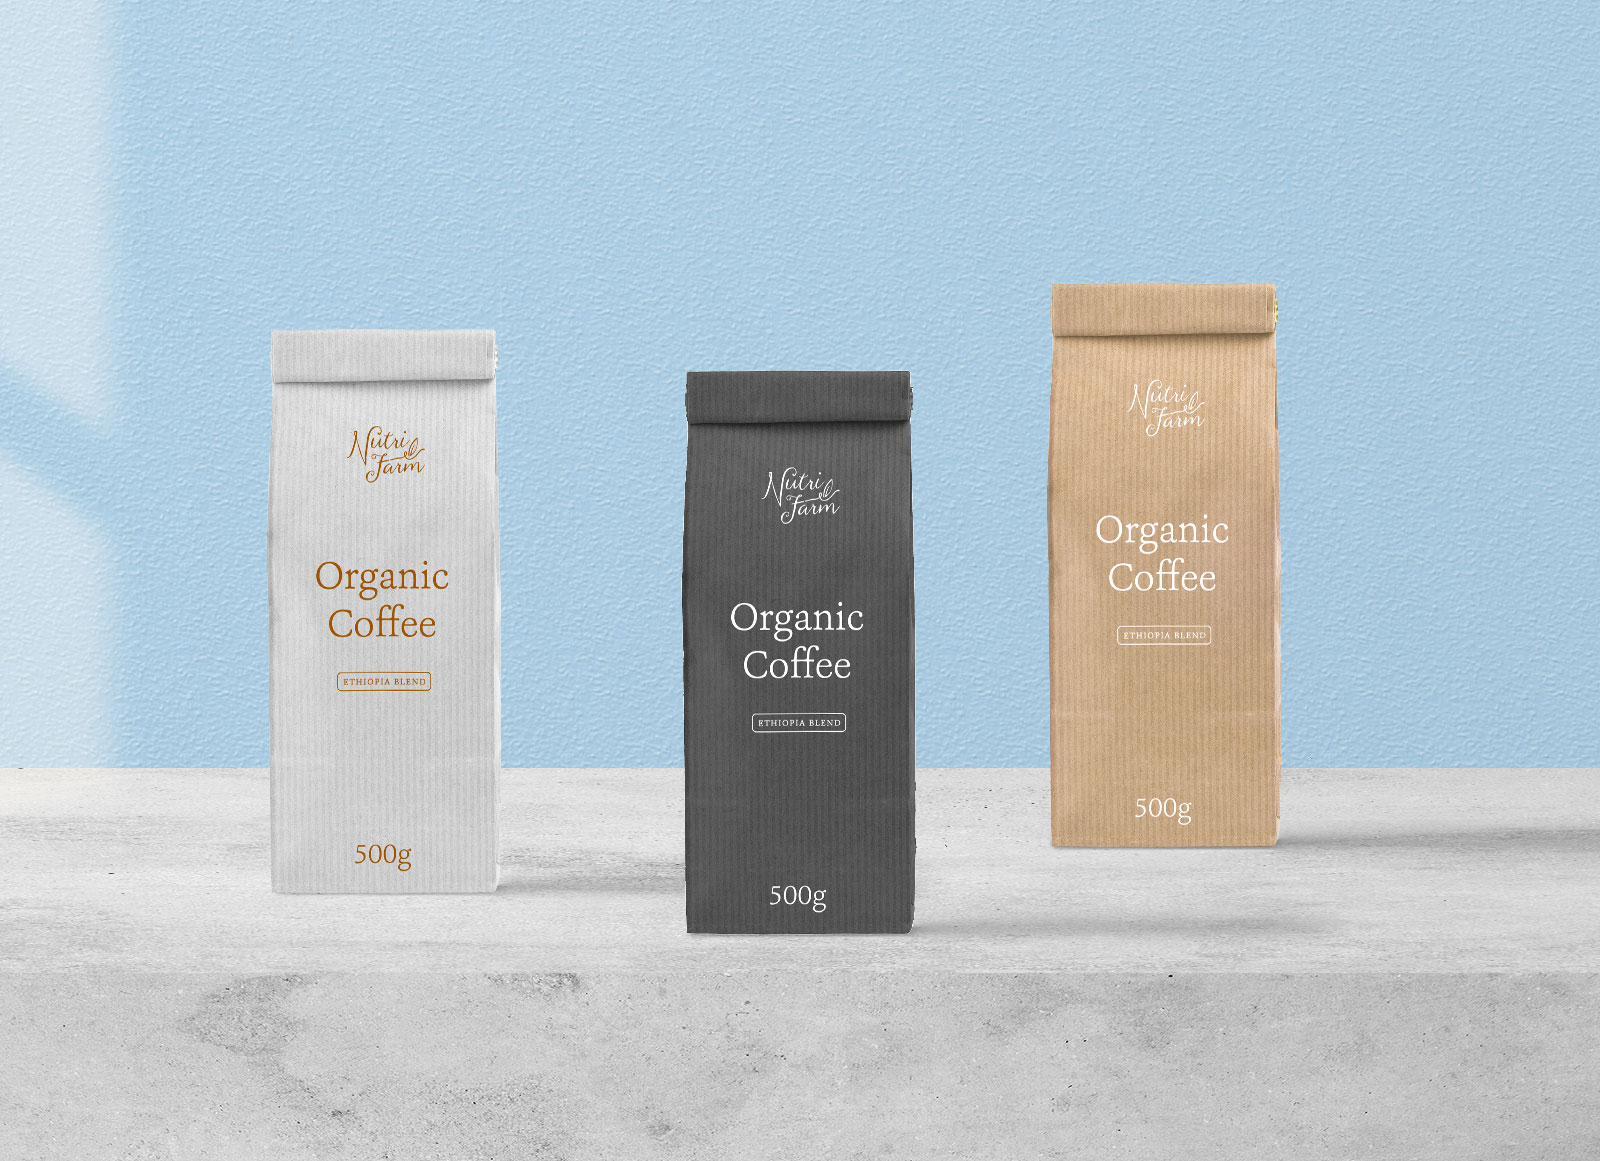 Use this free coffee bag mockup to present your designs beyond the expectations of your clients. Free Kraft Paper Pouch Coffee Packaging Mockup Psd Good Mockups